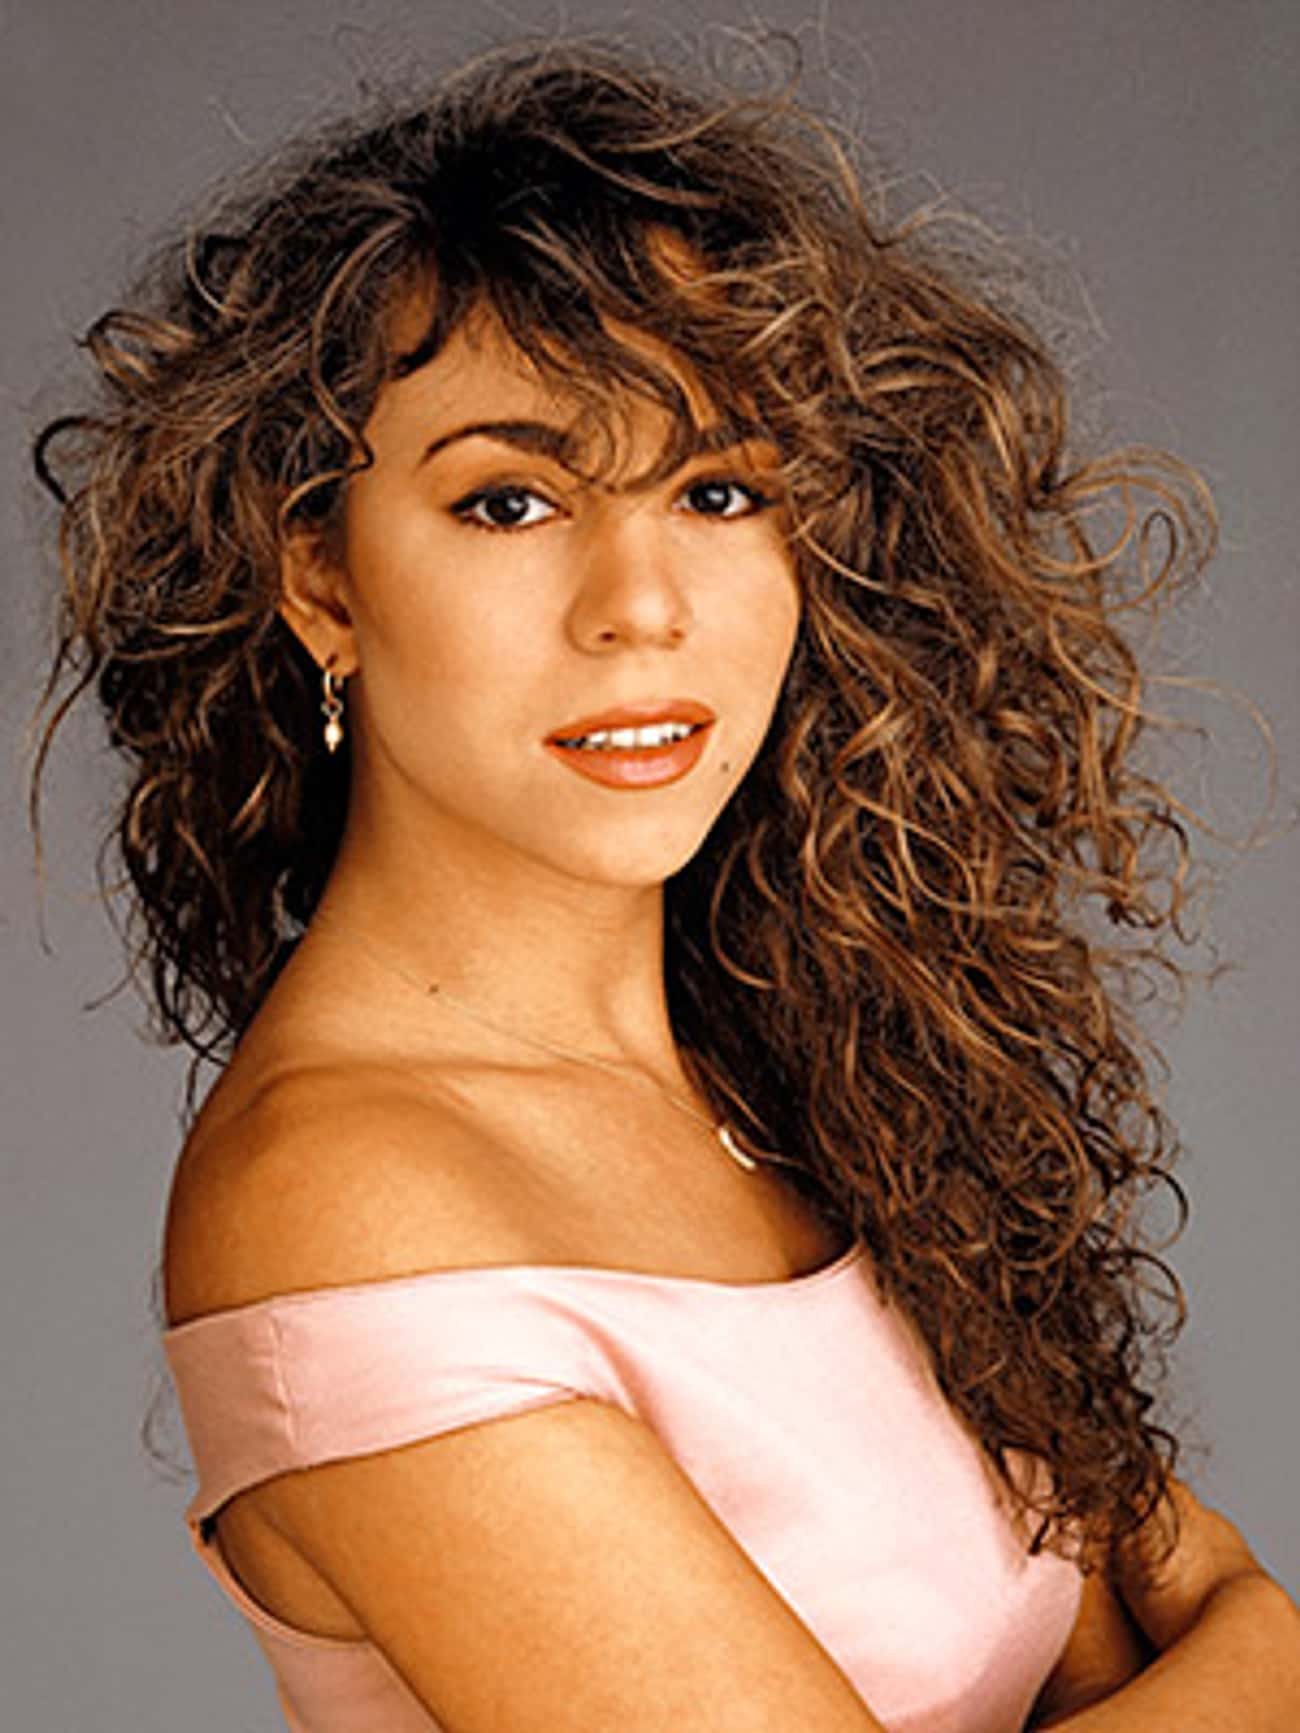 Young Mariah Carey in Pink Dre is listed (or ranked) 2 on the list 19 Pictures of Young Mariah Carey